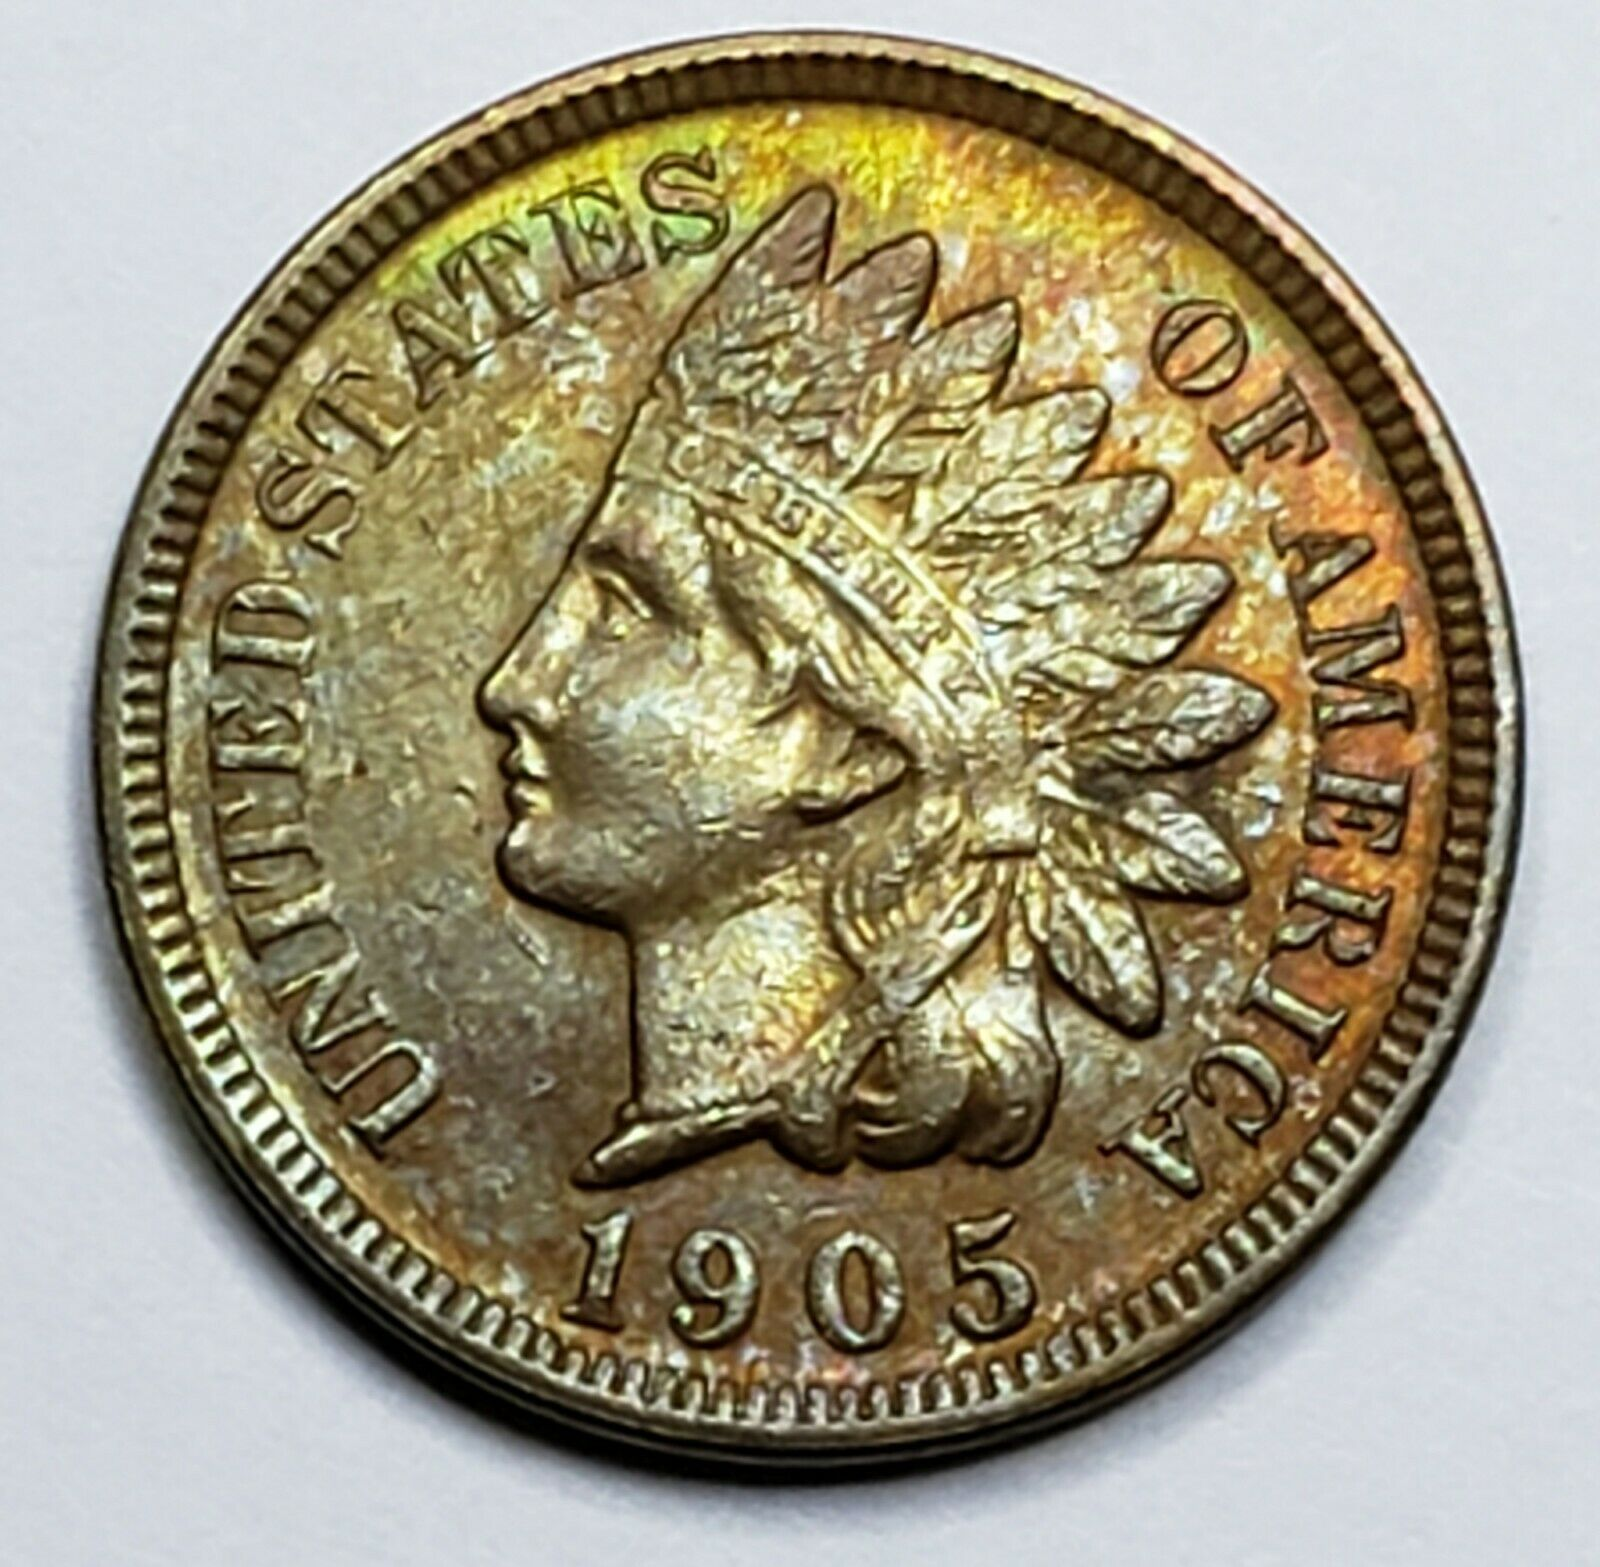 1905 Indian Head Cent Penny Coin Lot 519-91